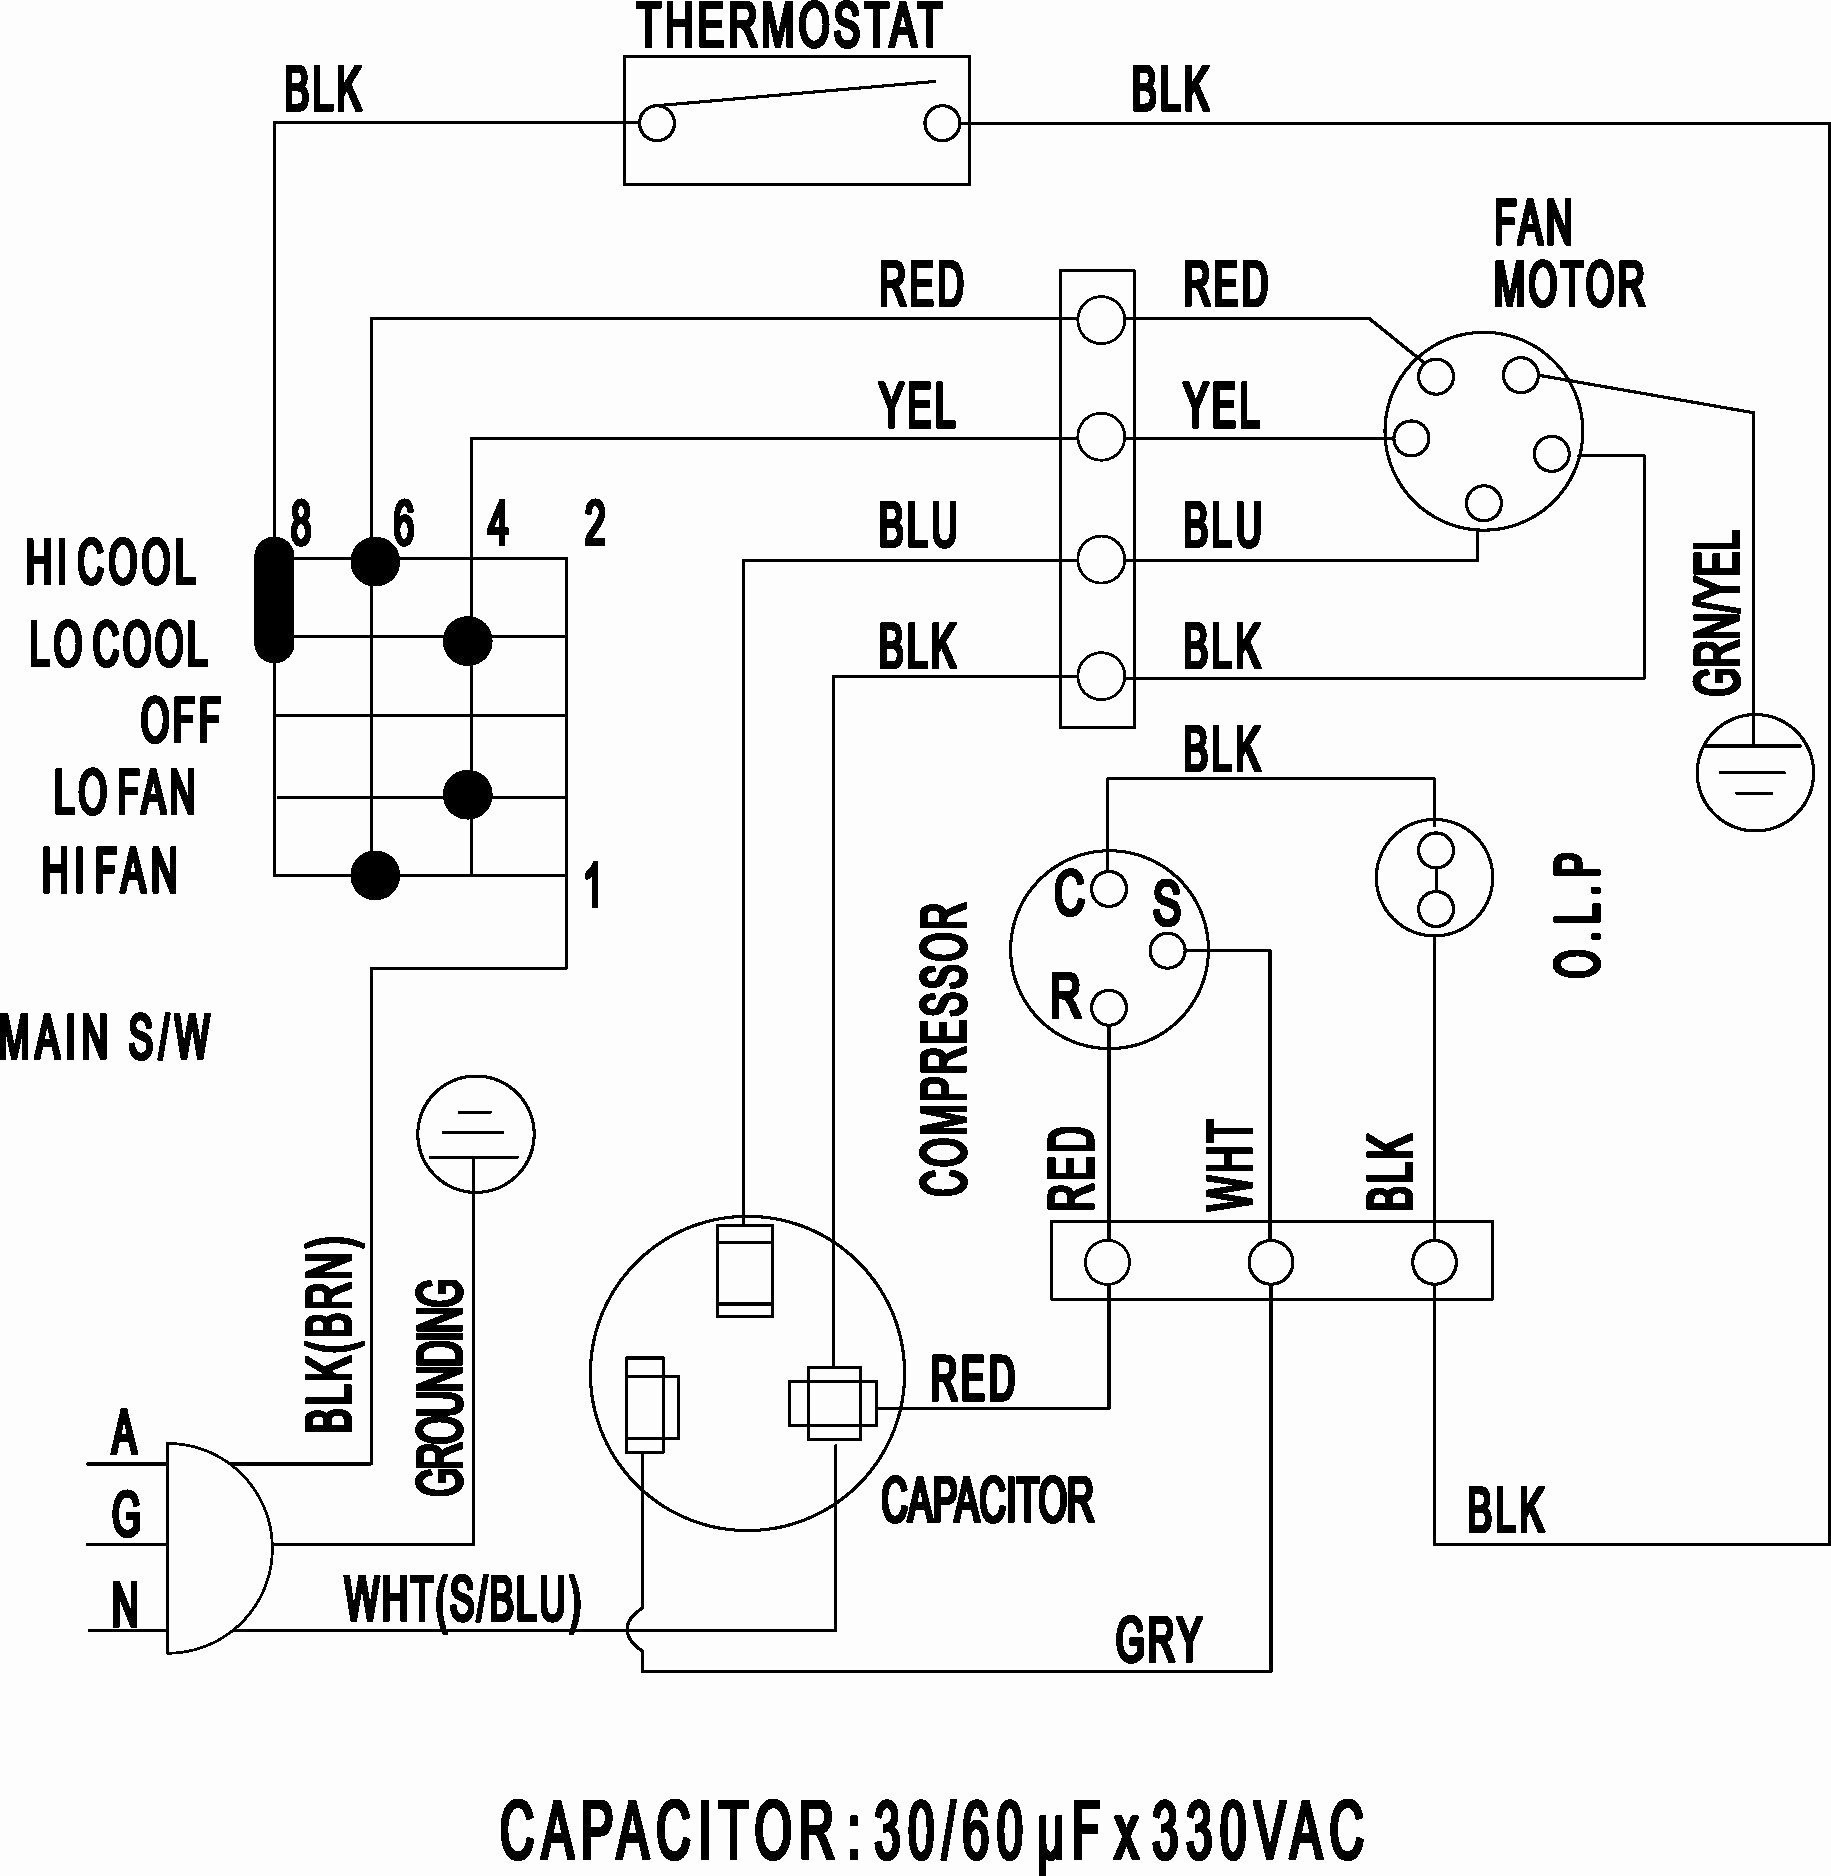 split air conditioning wiring diagram wiring diagram review Carrier Central Air Wiring Diagram